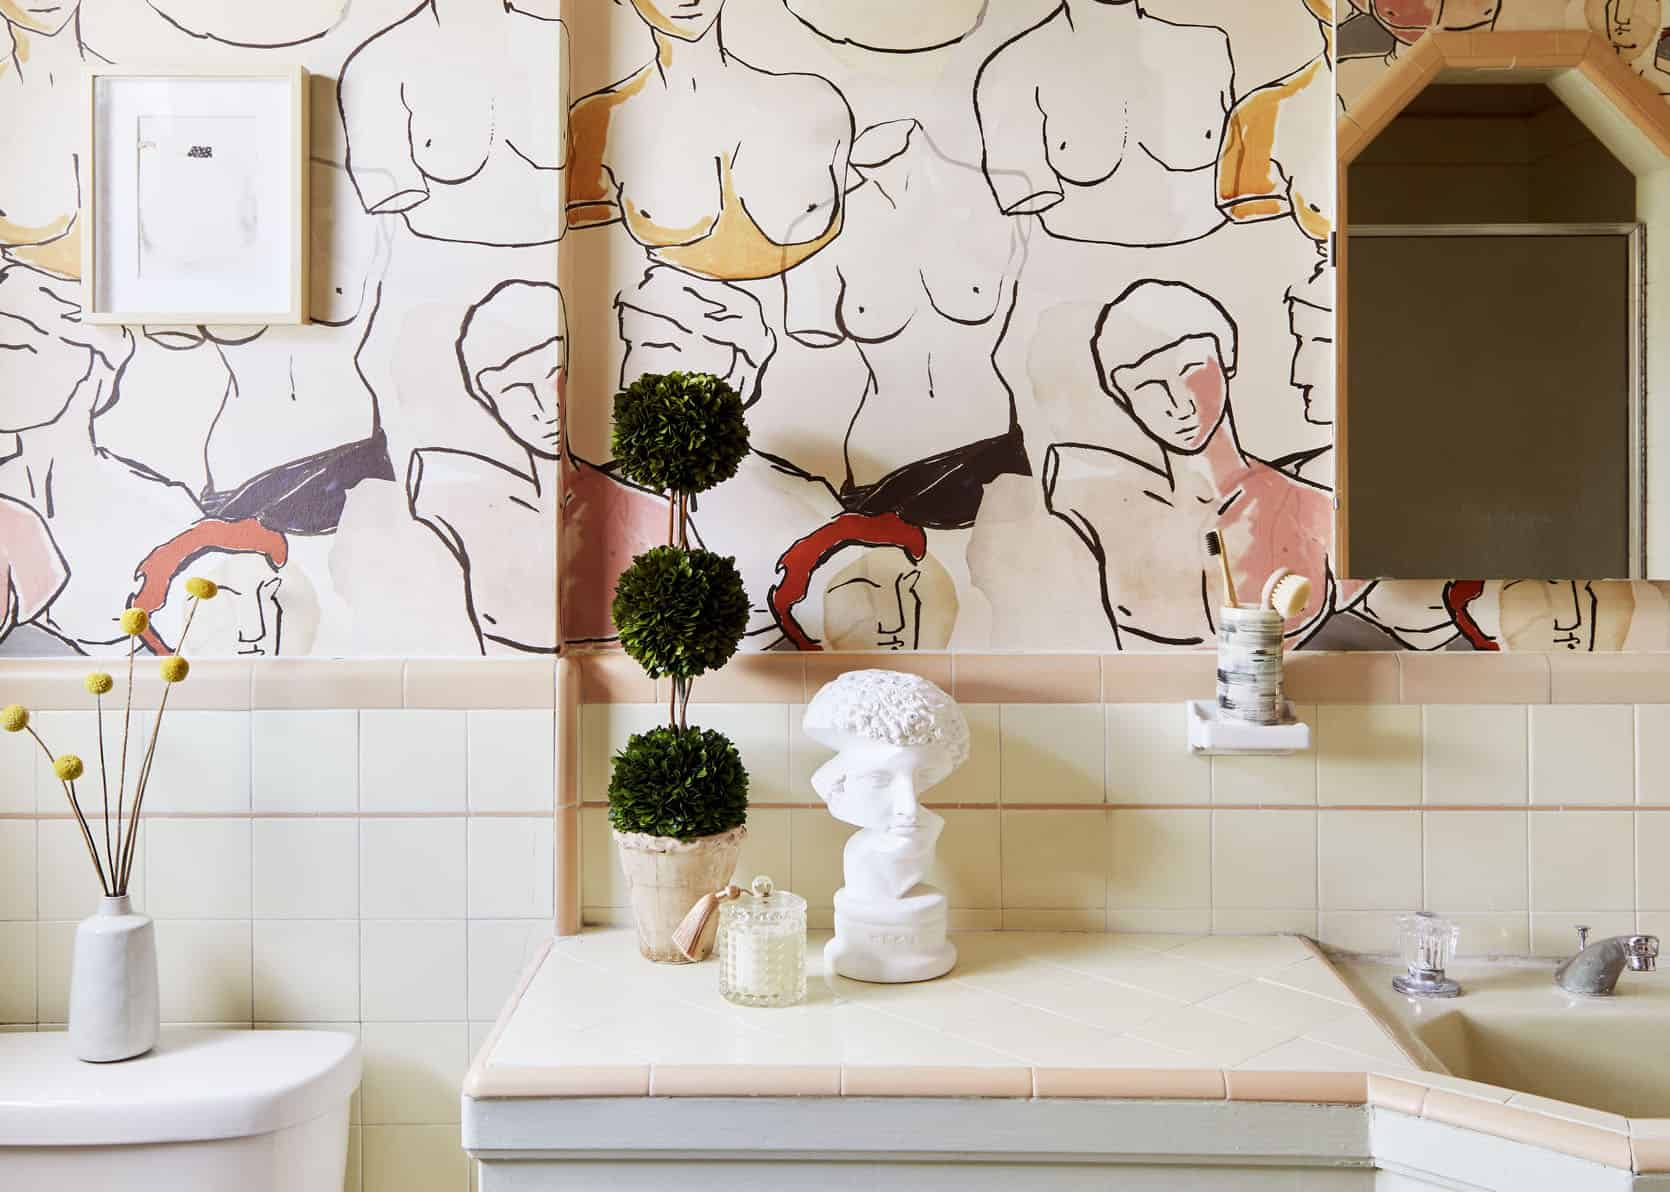 Caitlin's First MOTO Reveal – A Vintage Bathroom Gets A Modern Update